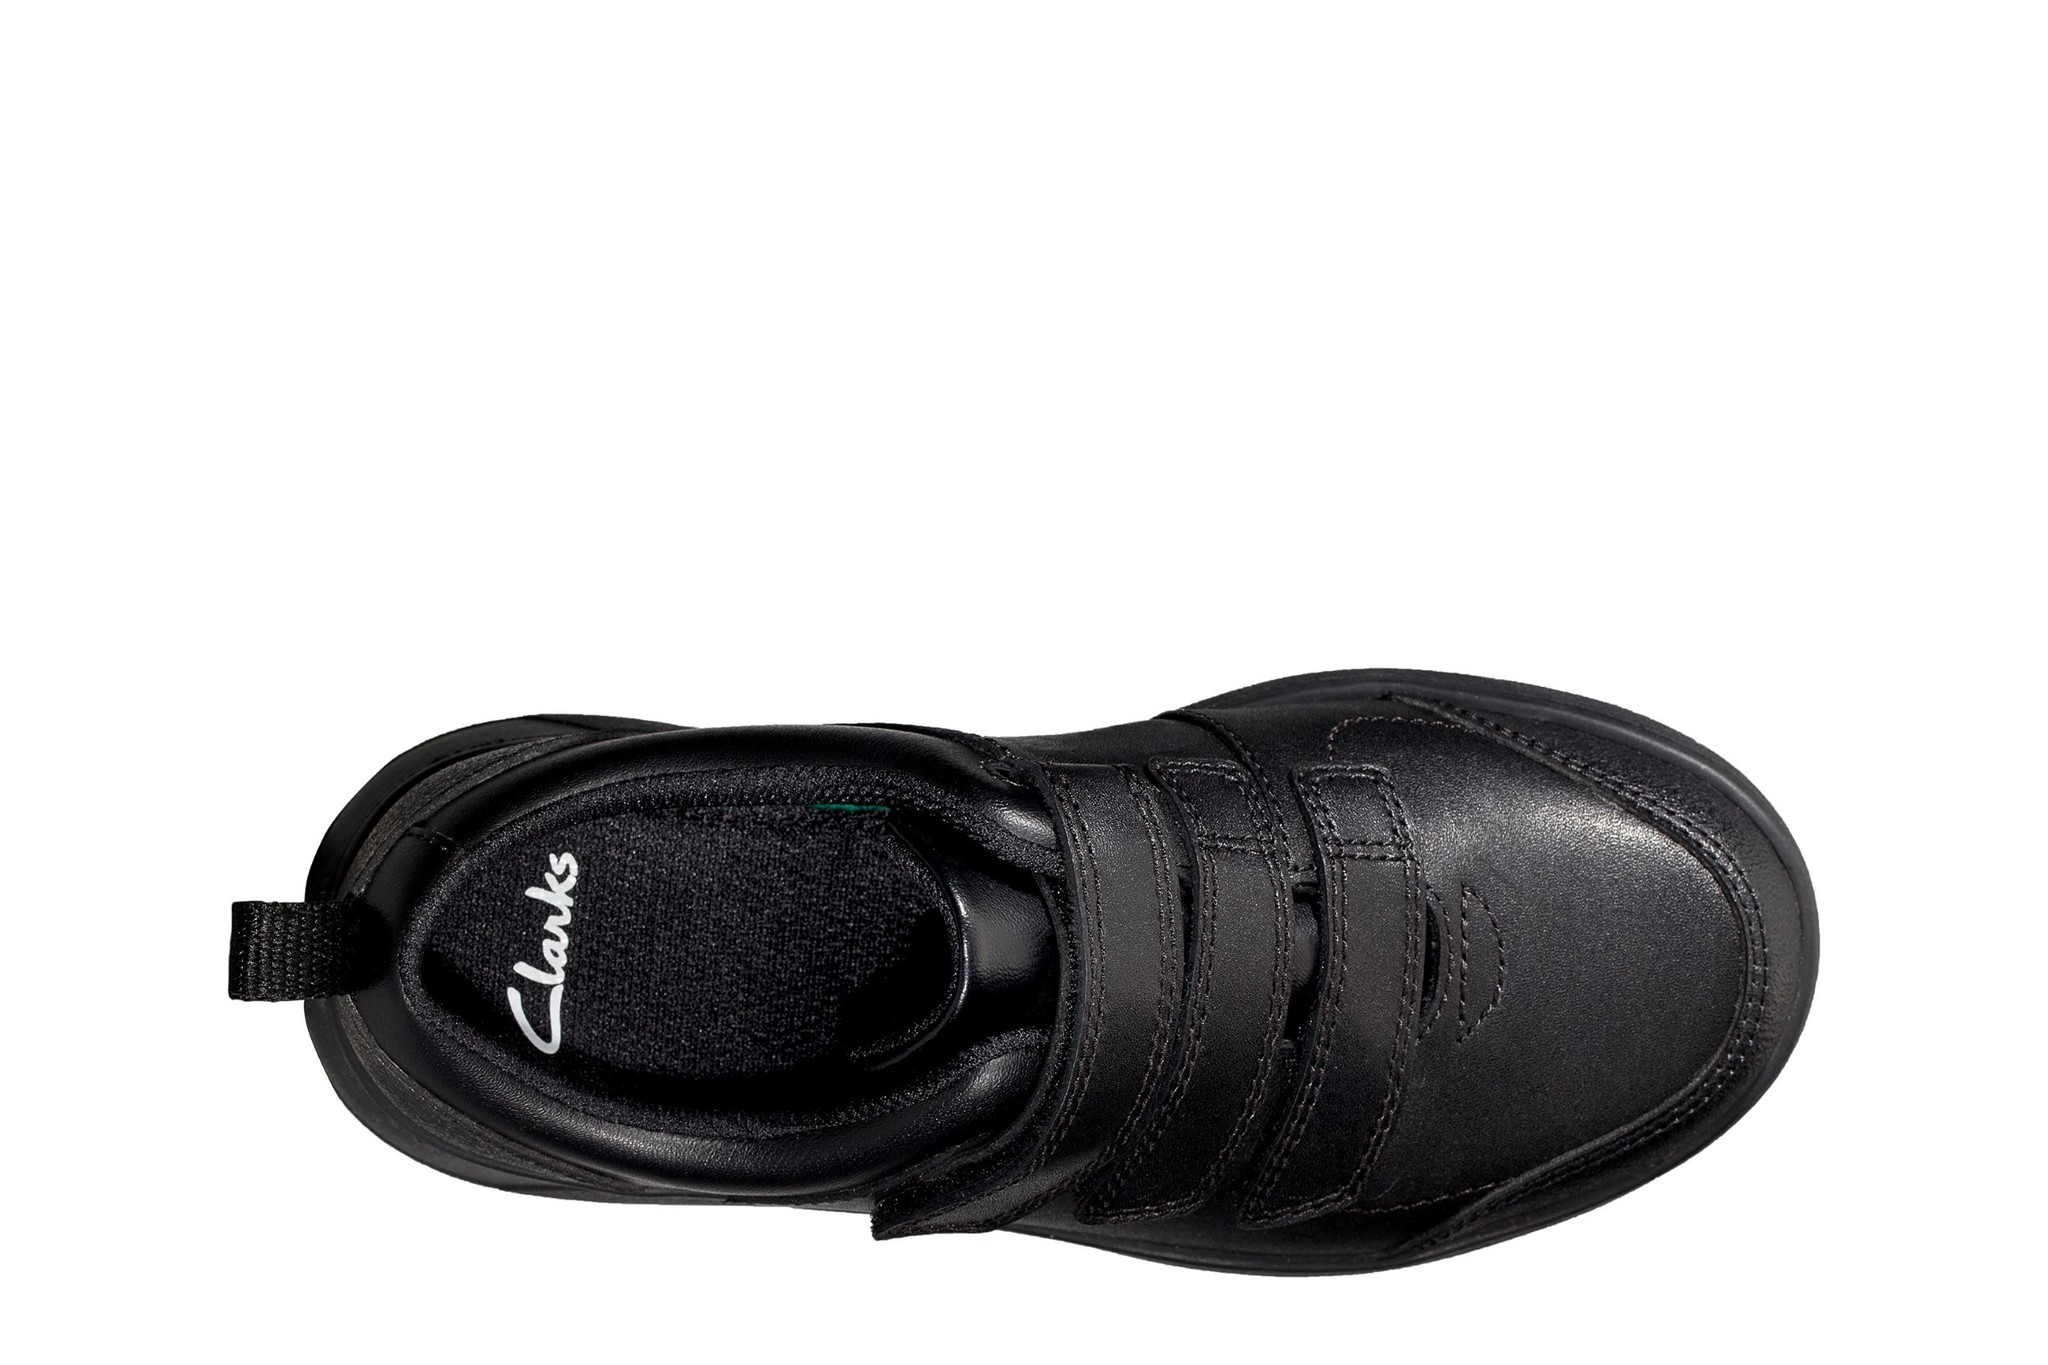 Clarks Scape Sky Infant